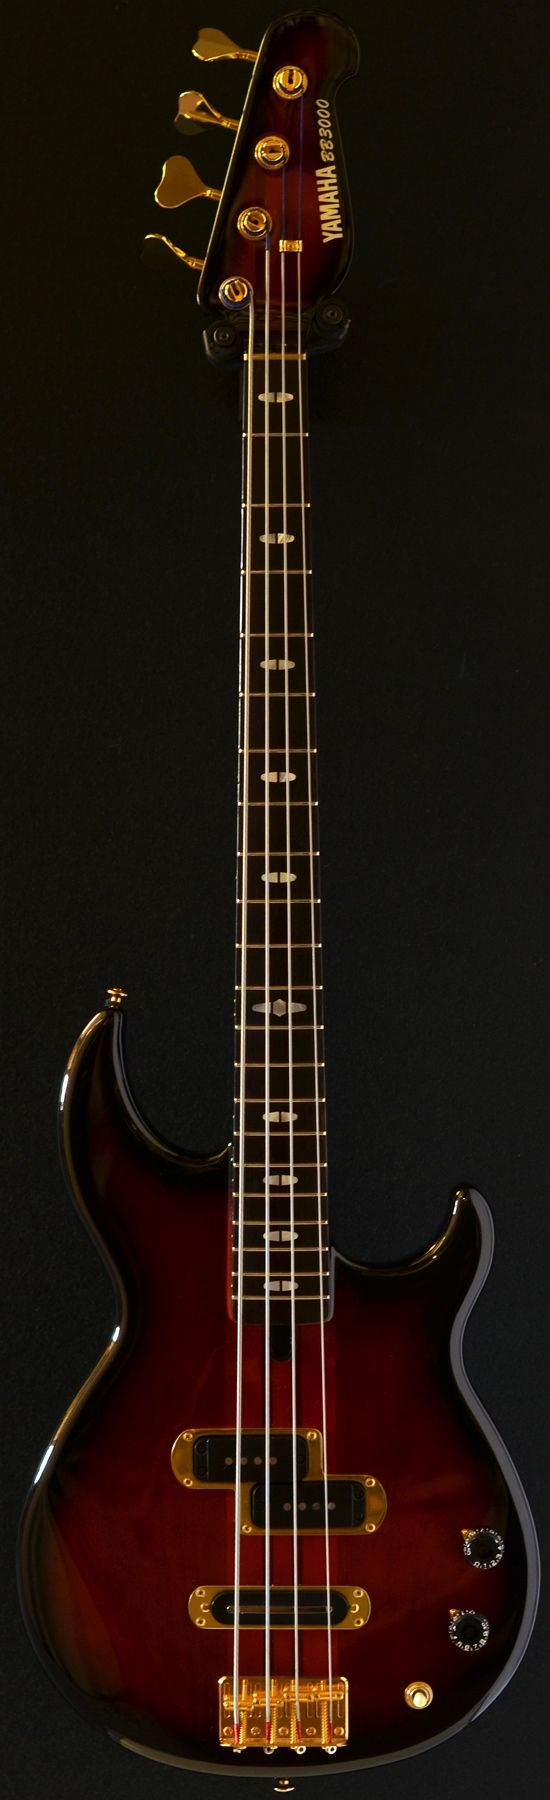 YAMAHA BB3000 four string bass (via Bass Direct) I want this Bass Guitar !! Please Give me !^_^\m/